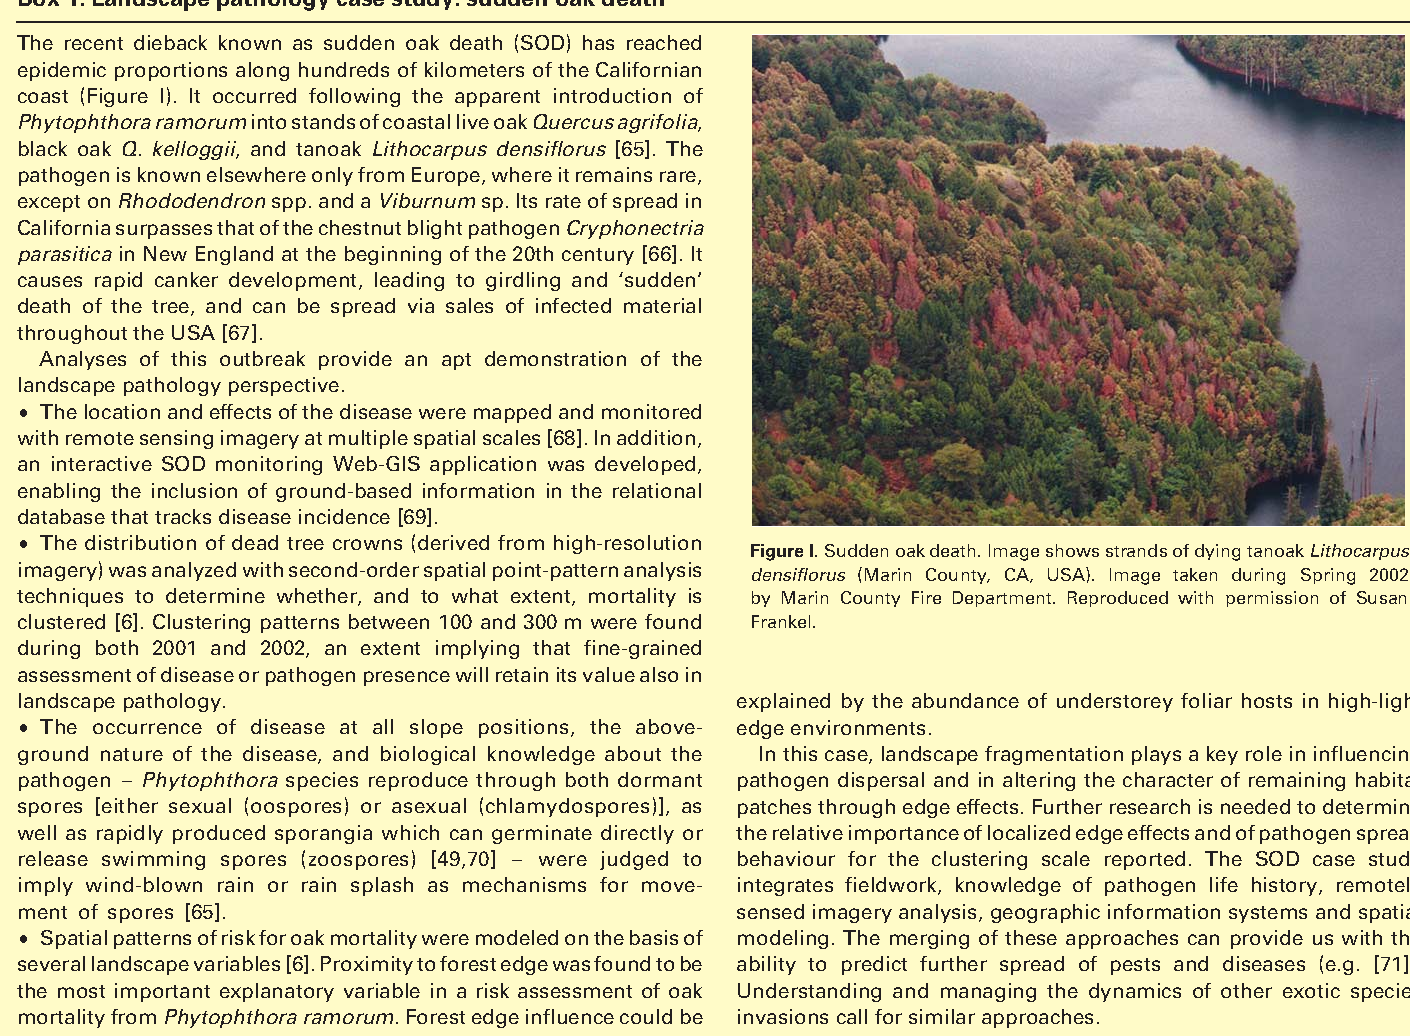 Figure I from Tree diseases and landscape processes: the